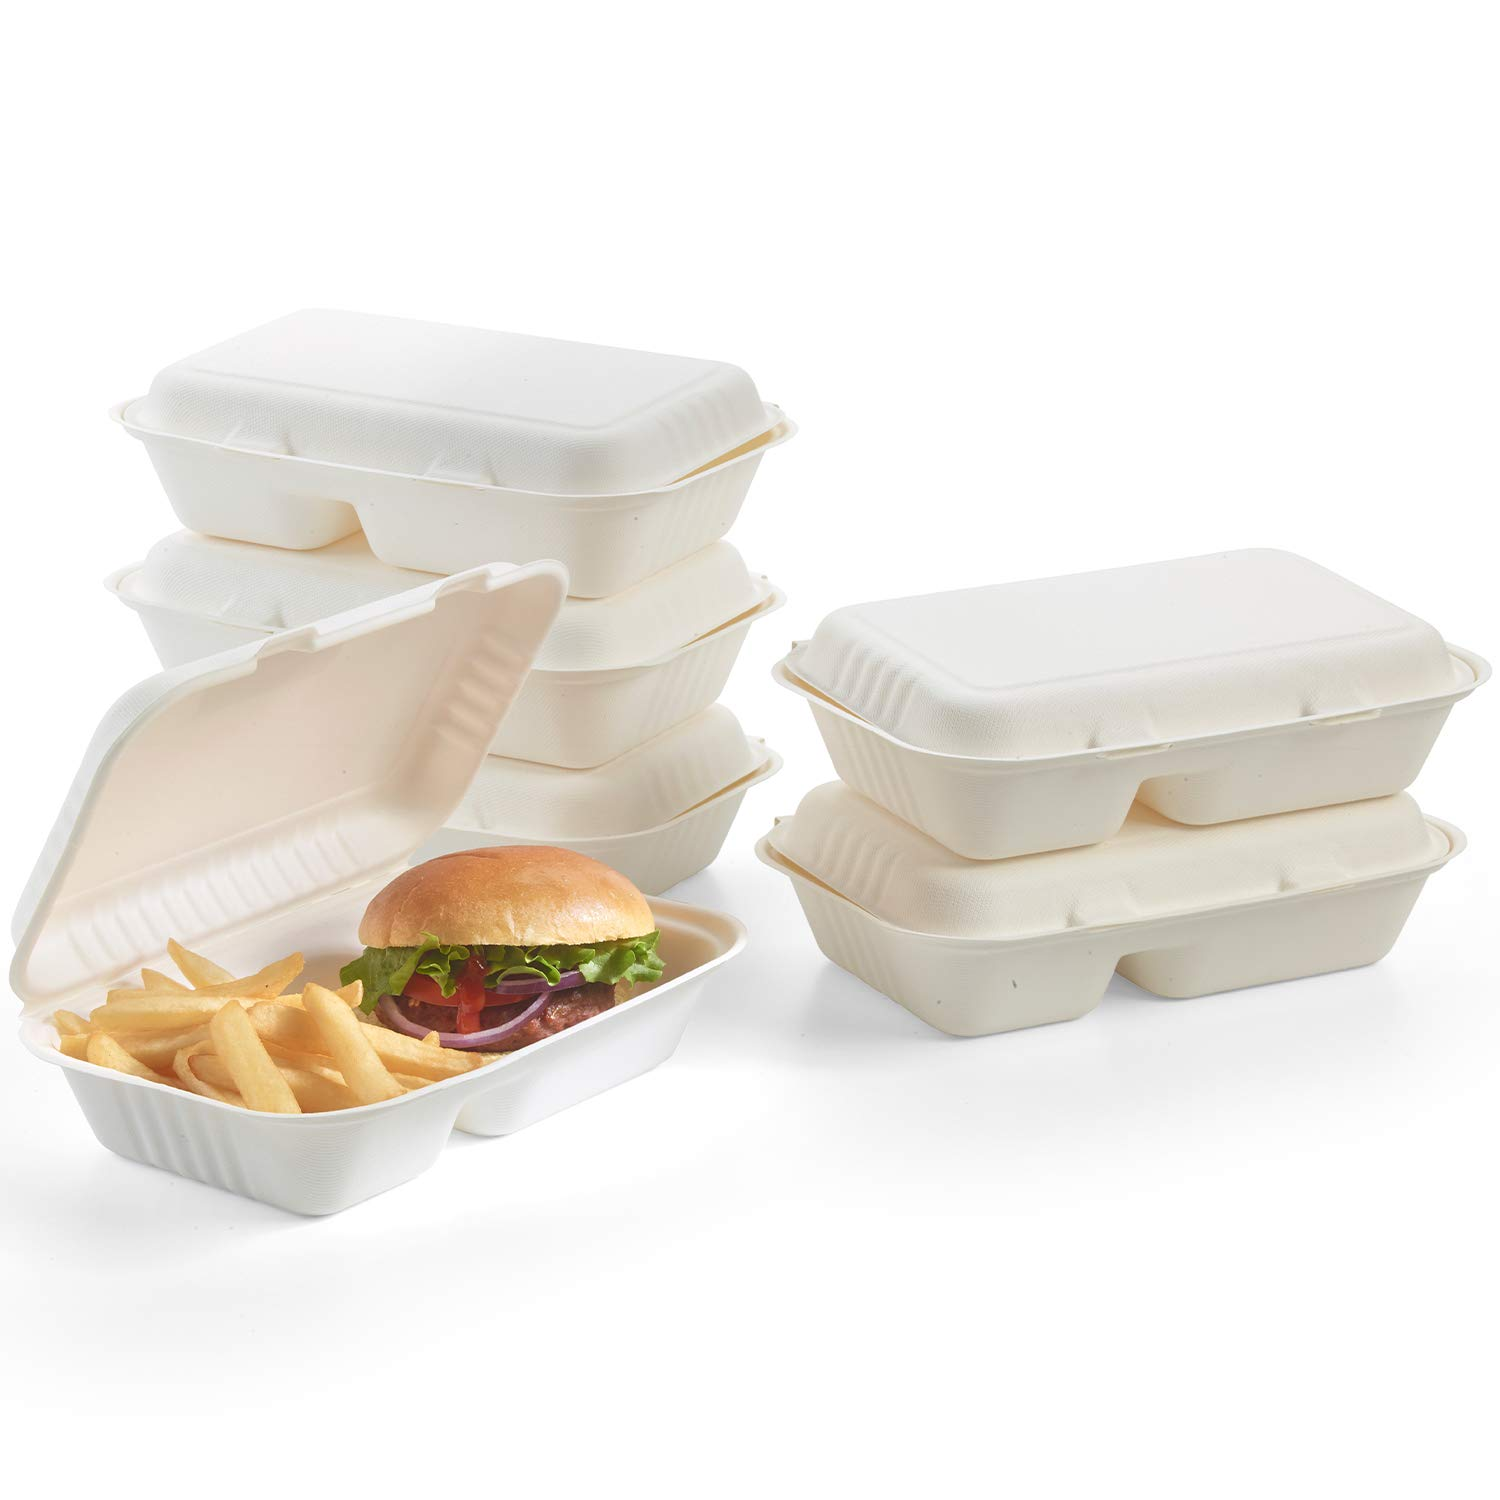 100% Compostable Clamshell To Go Boxes For Food [9X6